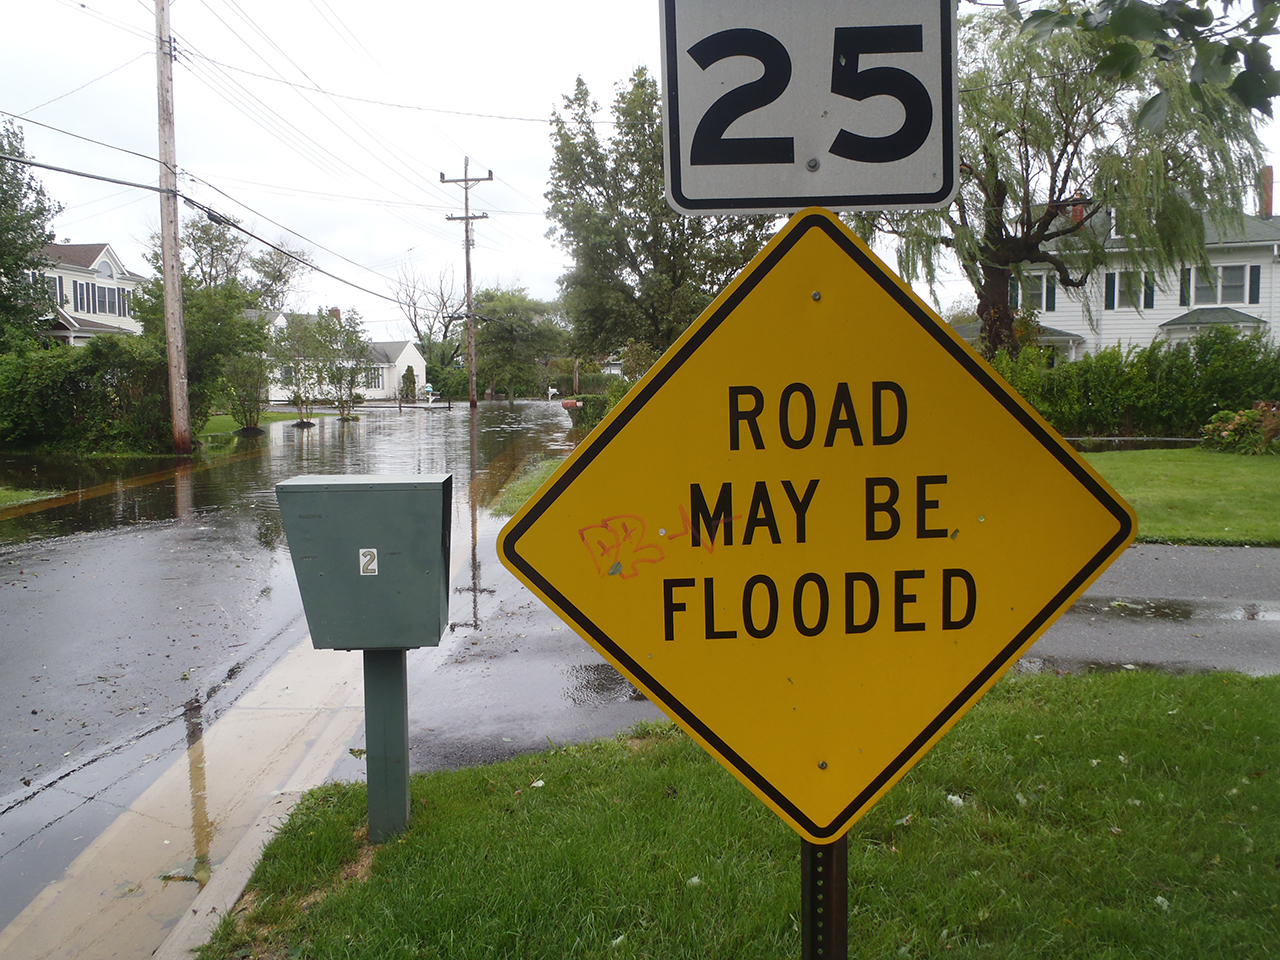 Mortgage Companies Must Accept Private Flood Insurance Effective July 1